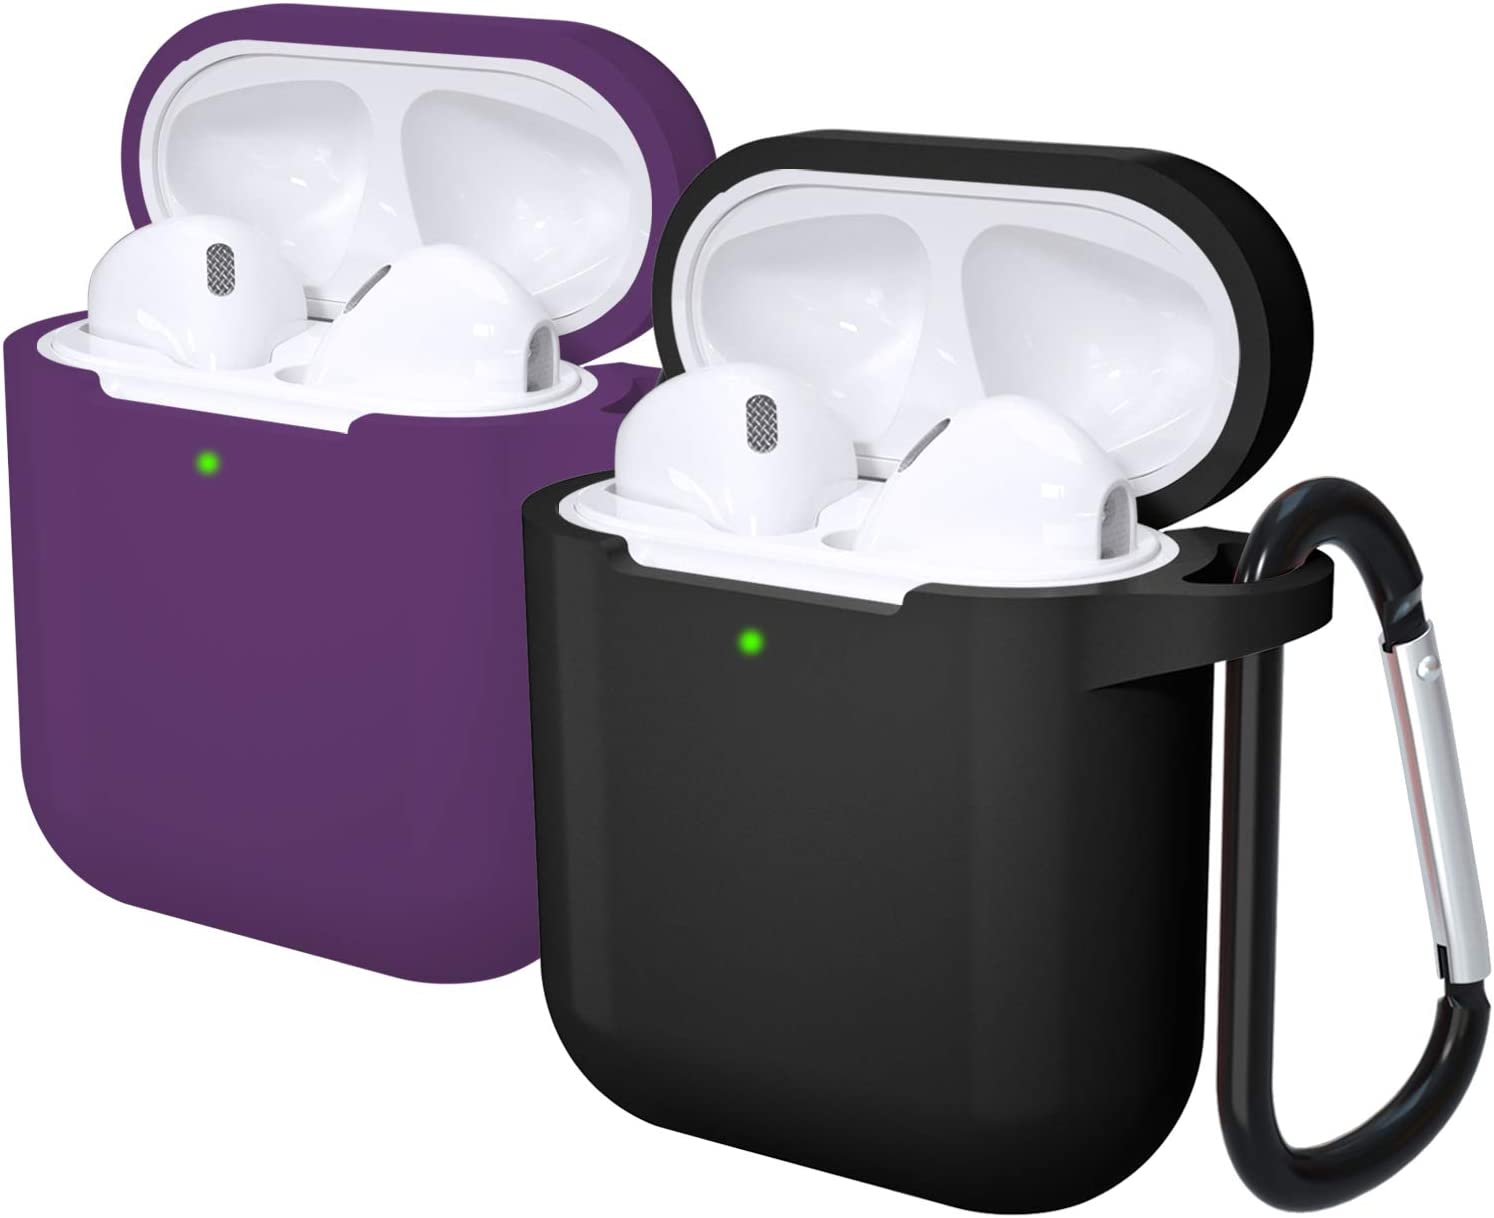 Laffav Airpods Case Cover Protective AirPod Accessories Silicone Case Skin with Anti-Lost Carabiner (Front LED Visible) for Women Men Compatible with Apple AirPods 2 and 1, 2 Pack, Black, Purple